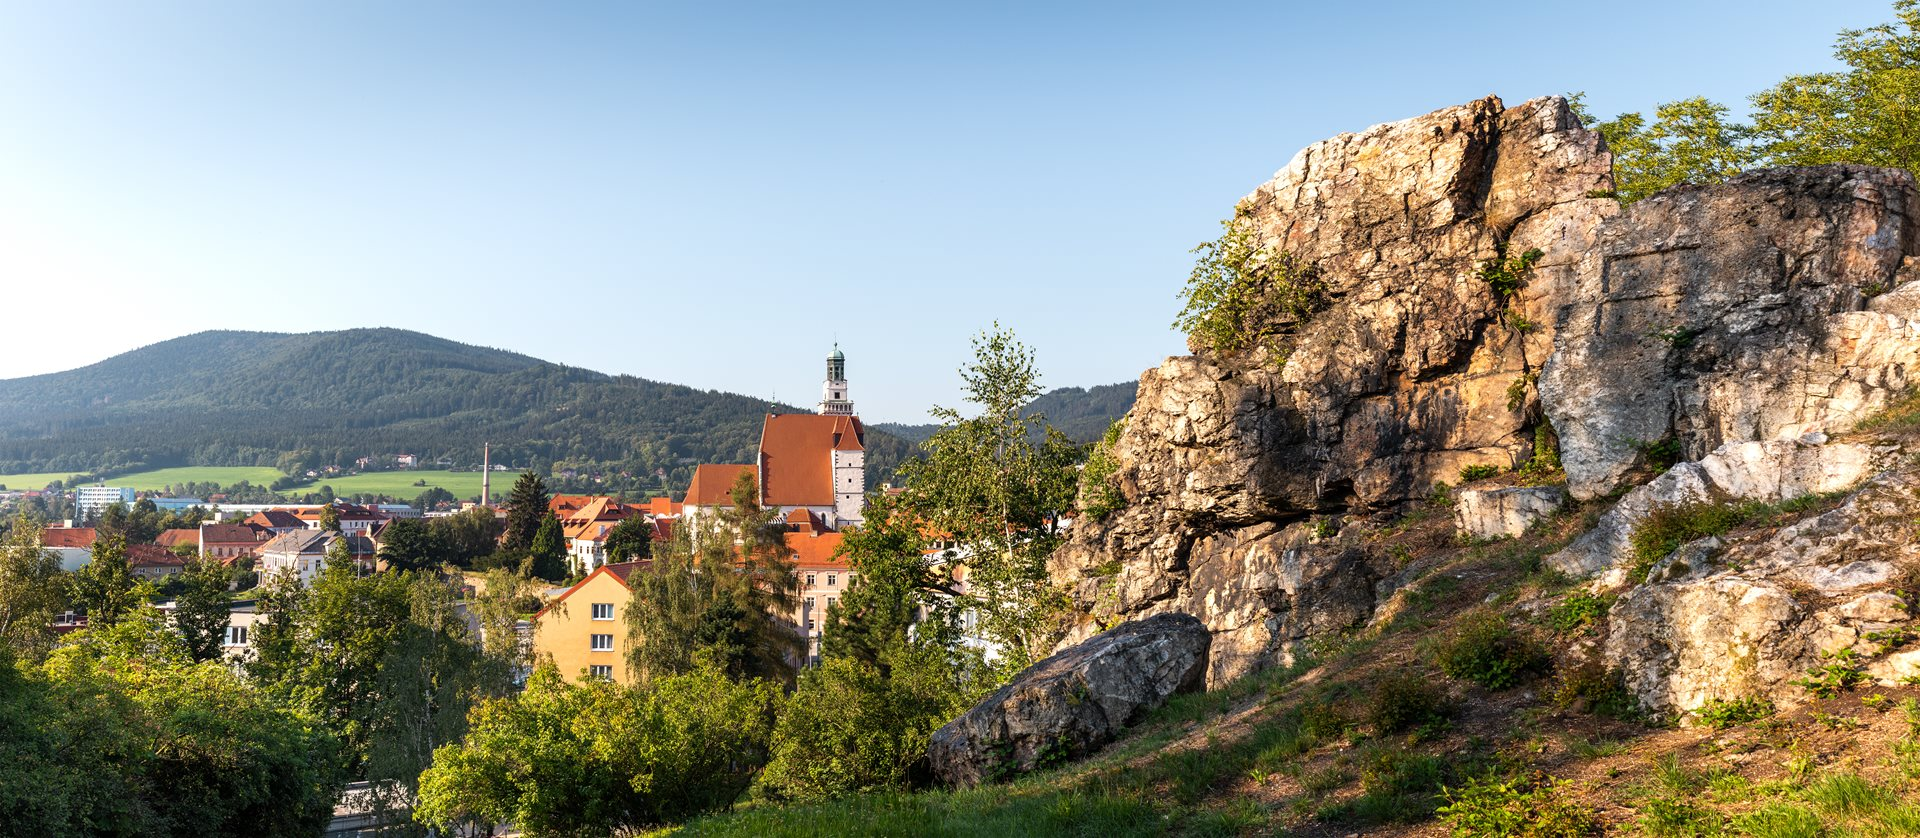 Historic town of Prachatice